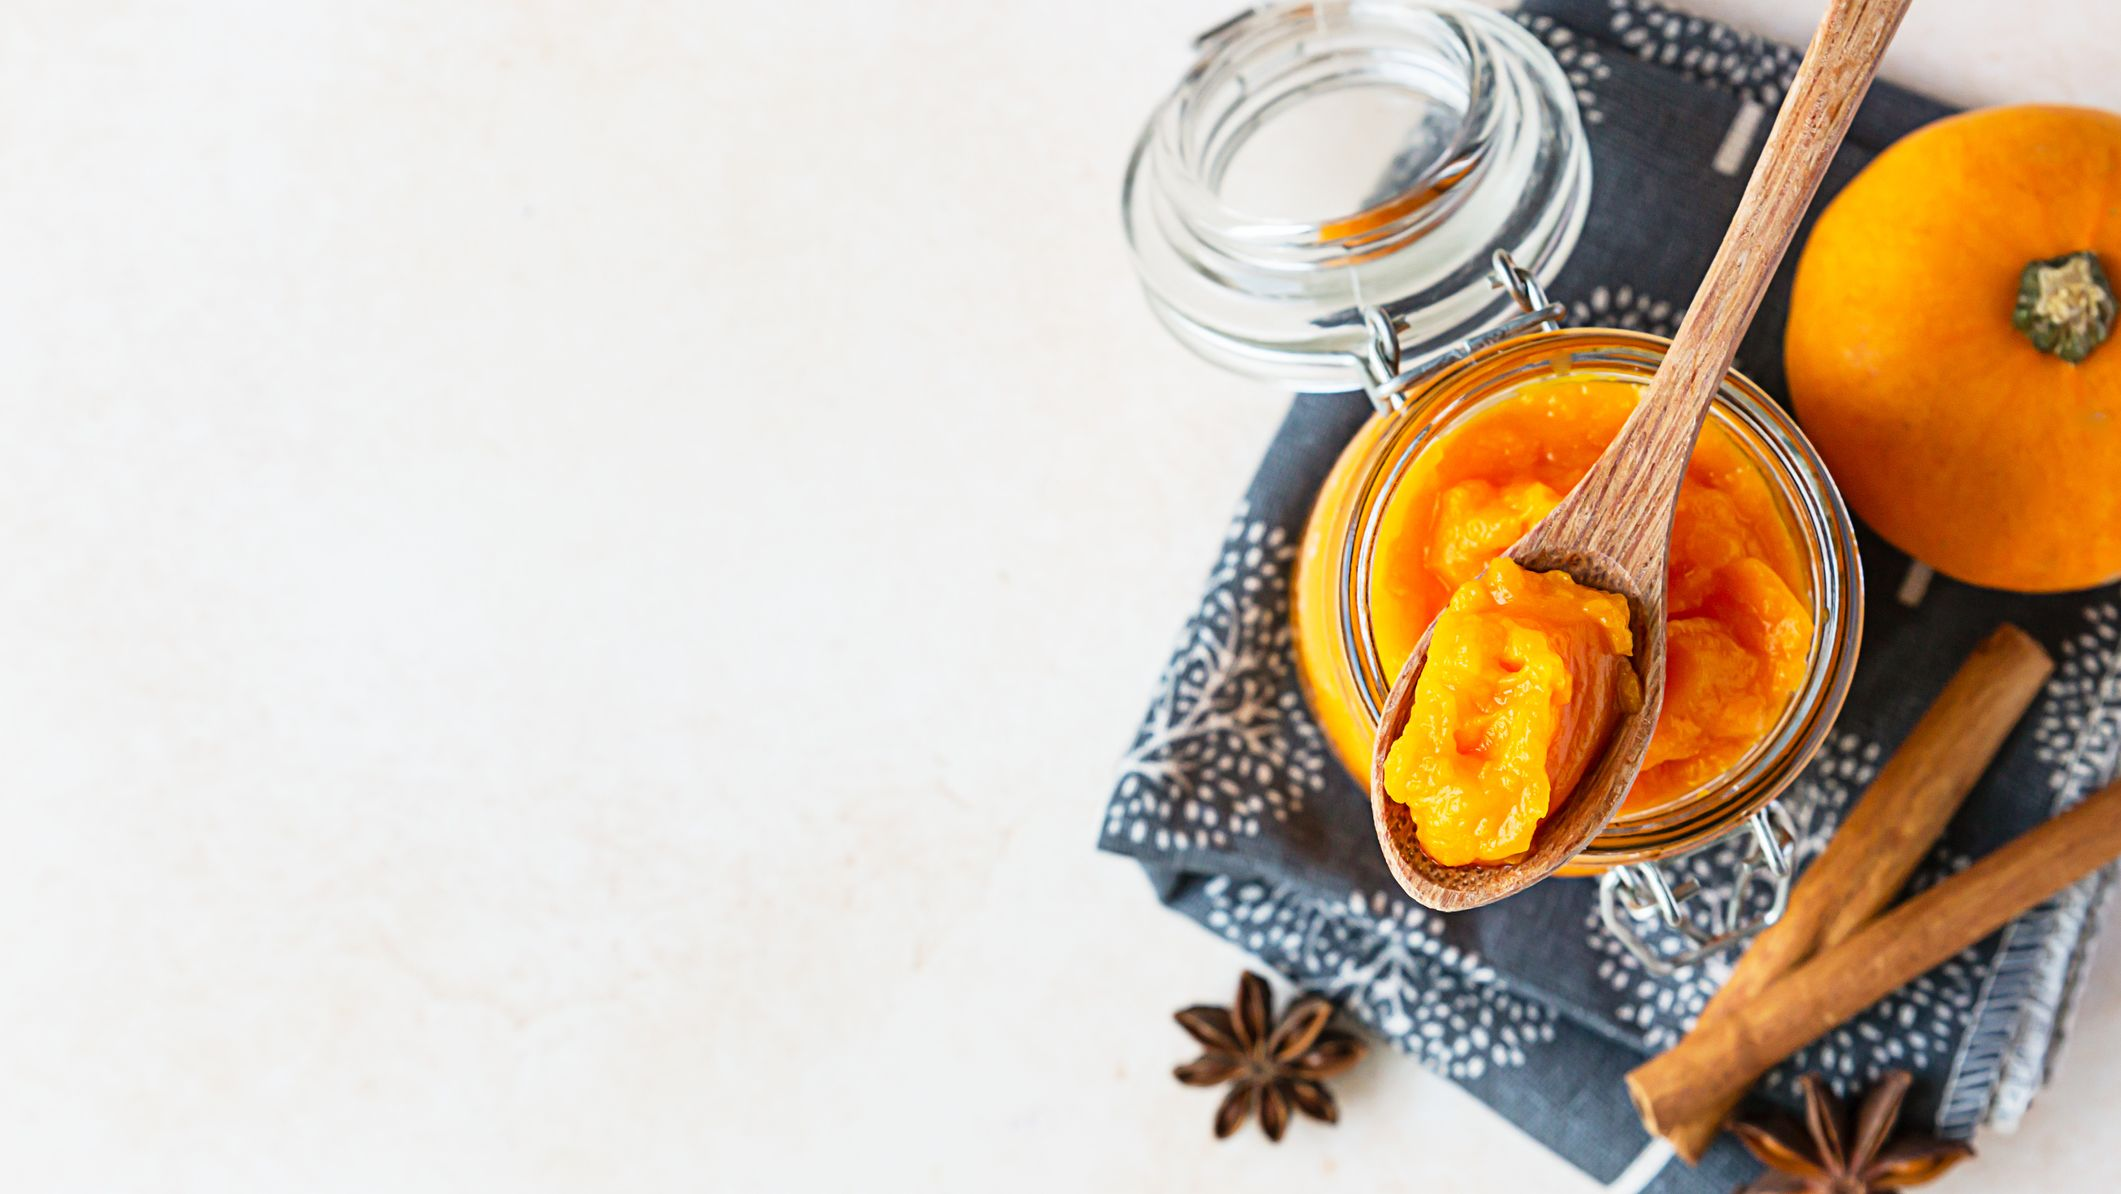 5 Creative Recipes That Use Canned Pumpkin and Pumpkin Pie Filling